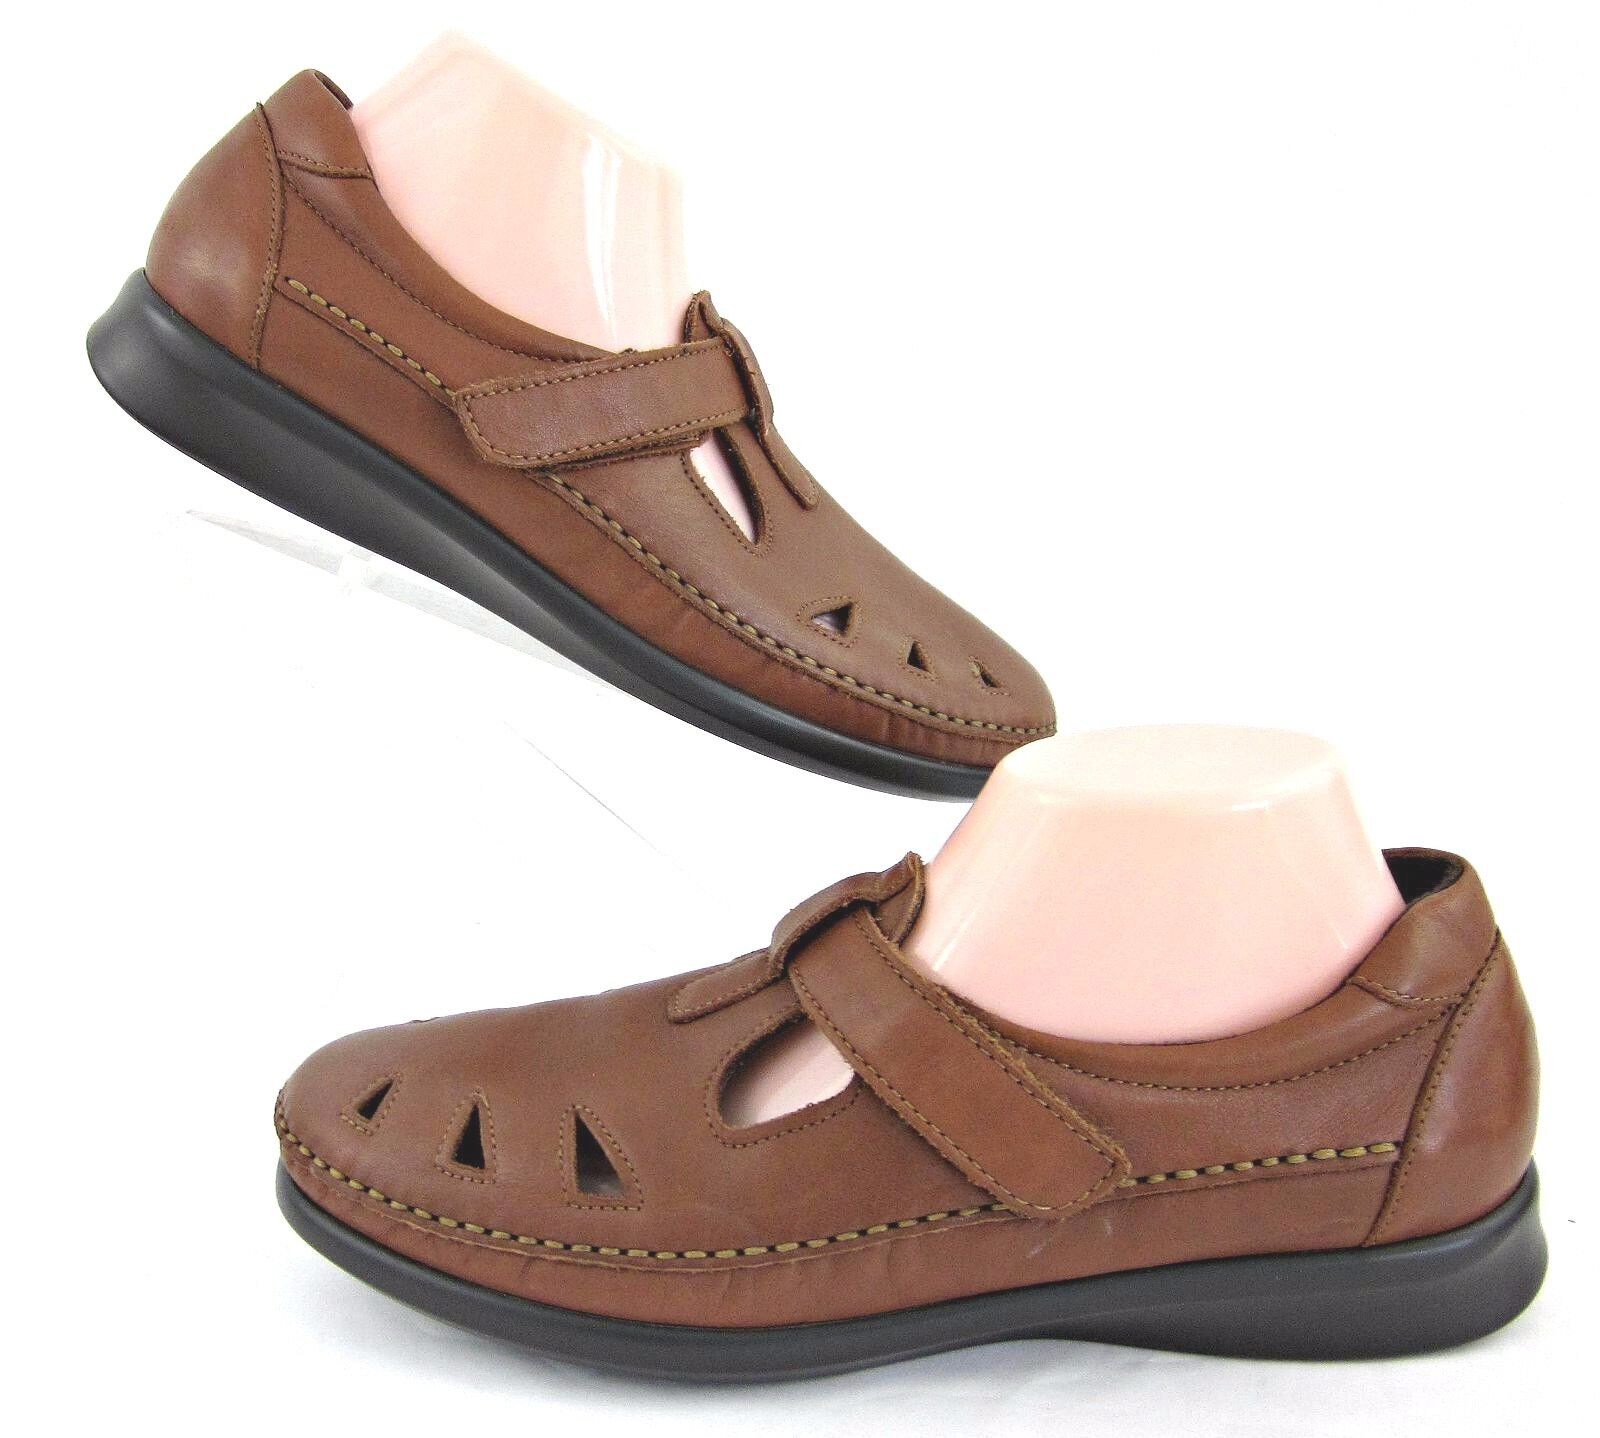 SAS Womens 'Roamer' Slip On Tripad Comfort shoes Chestnut Leather Sz 10N